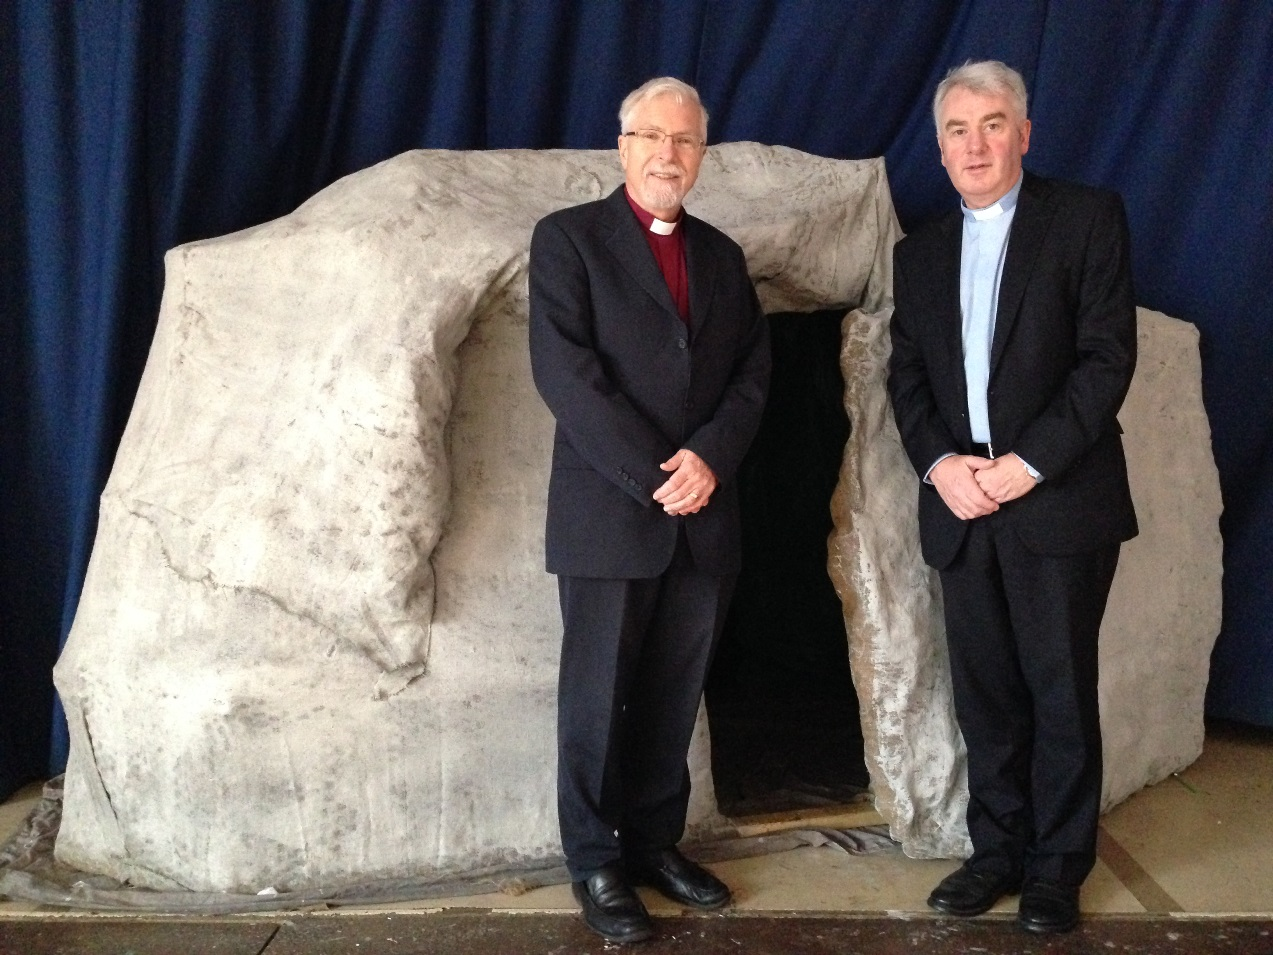 Bishop Miller & Archdeacon McClay at tomb